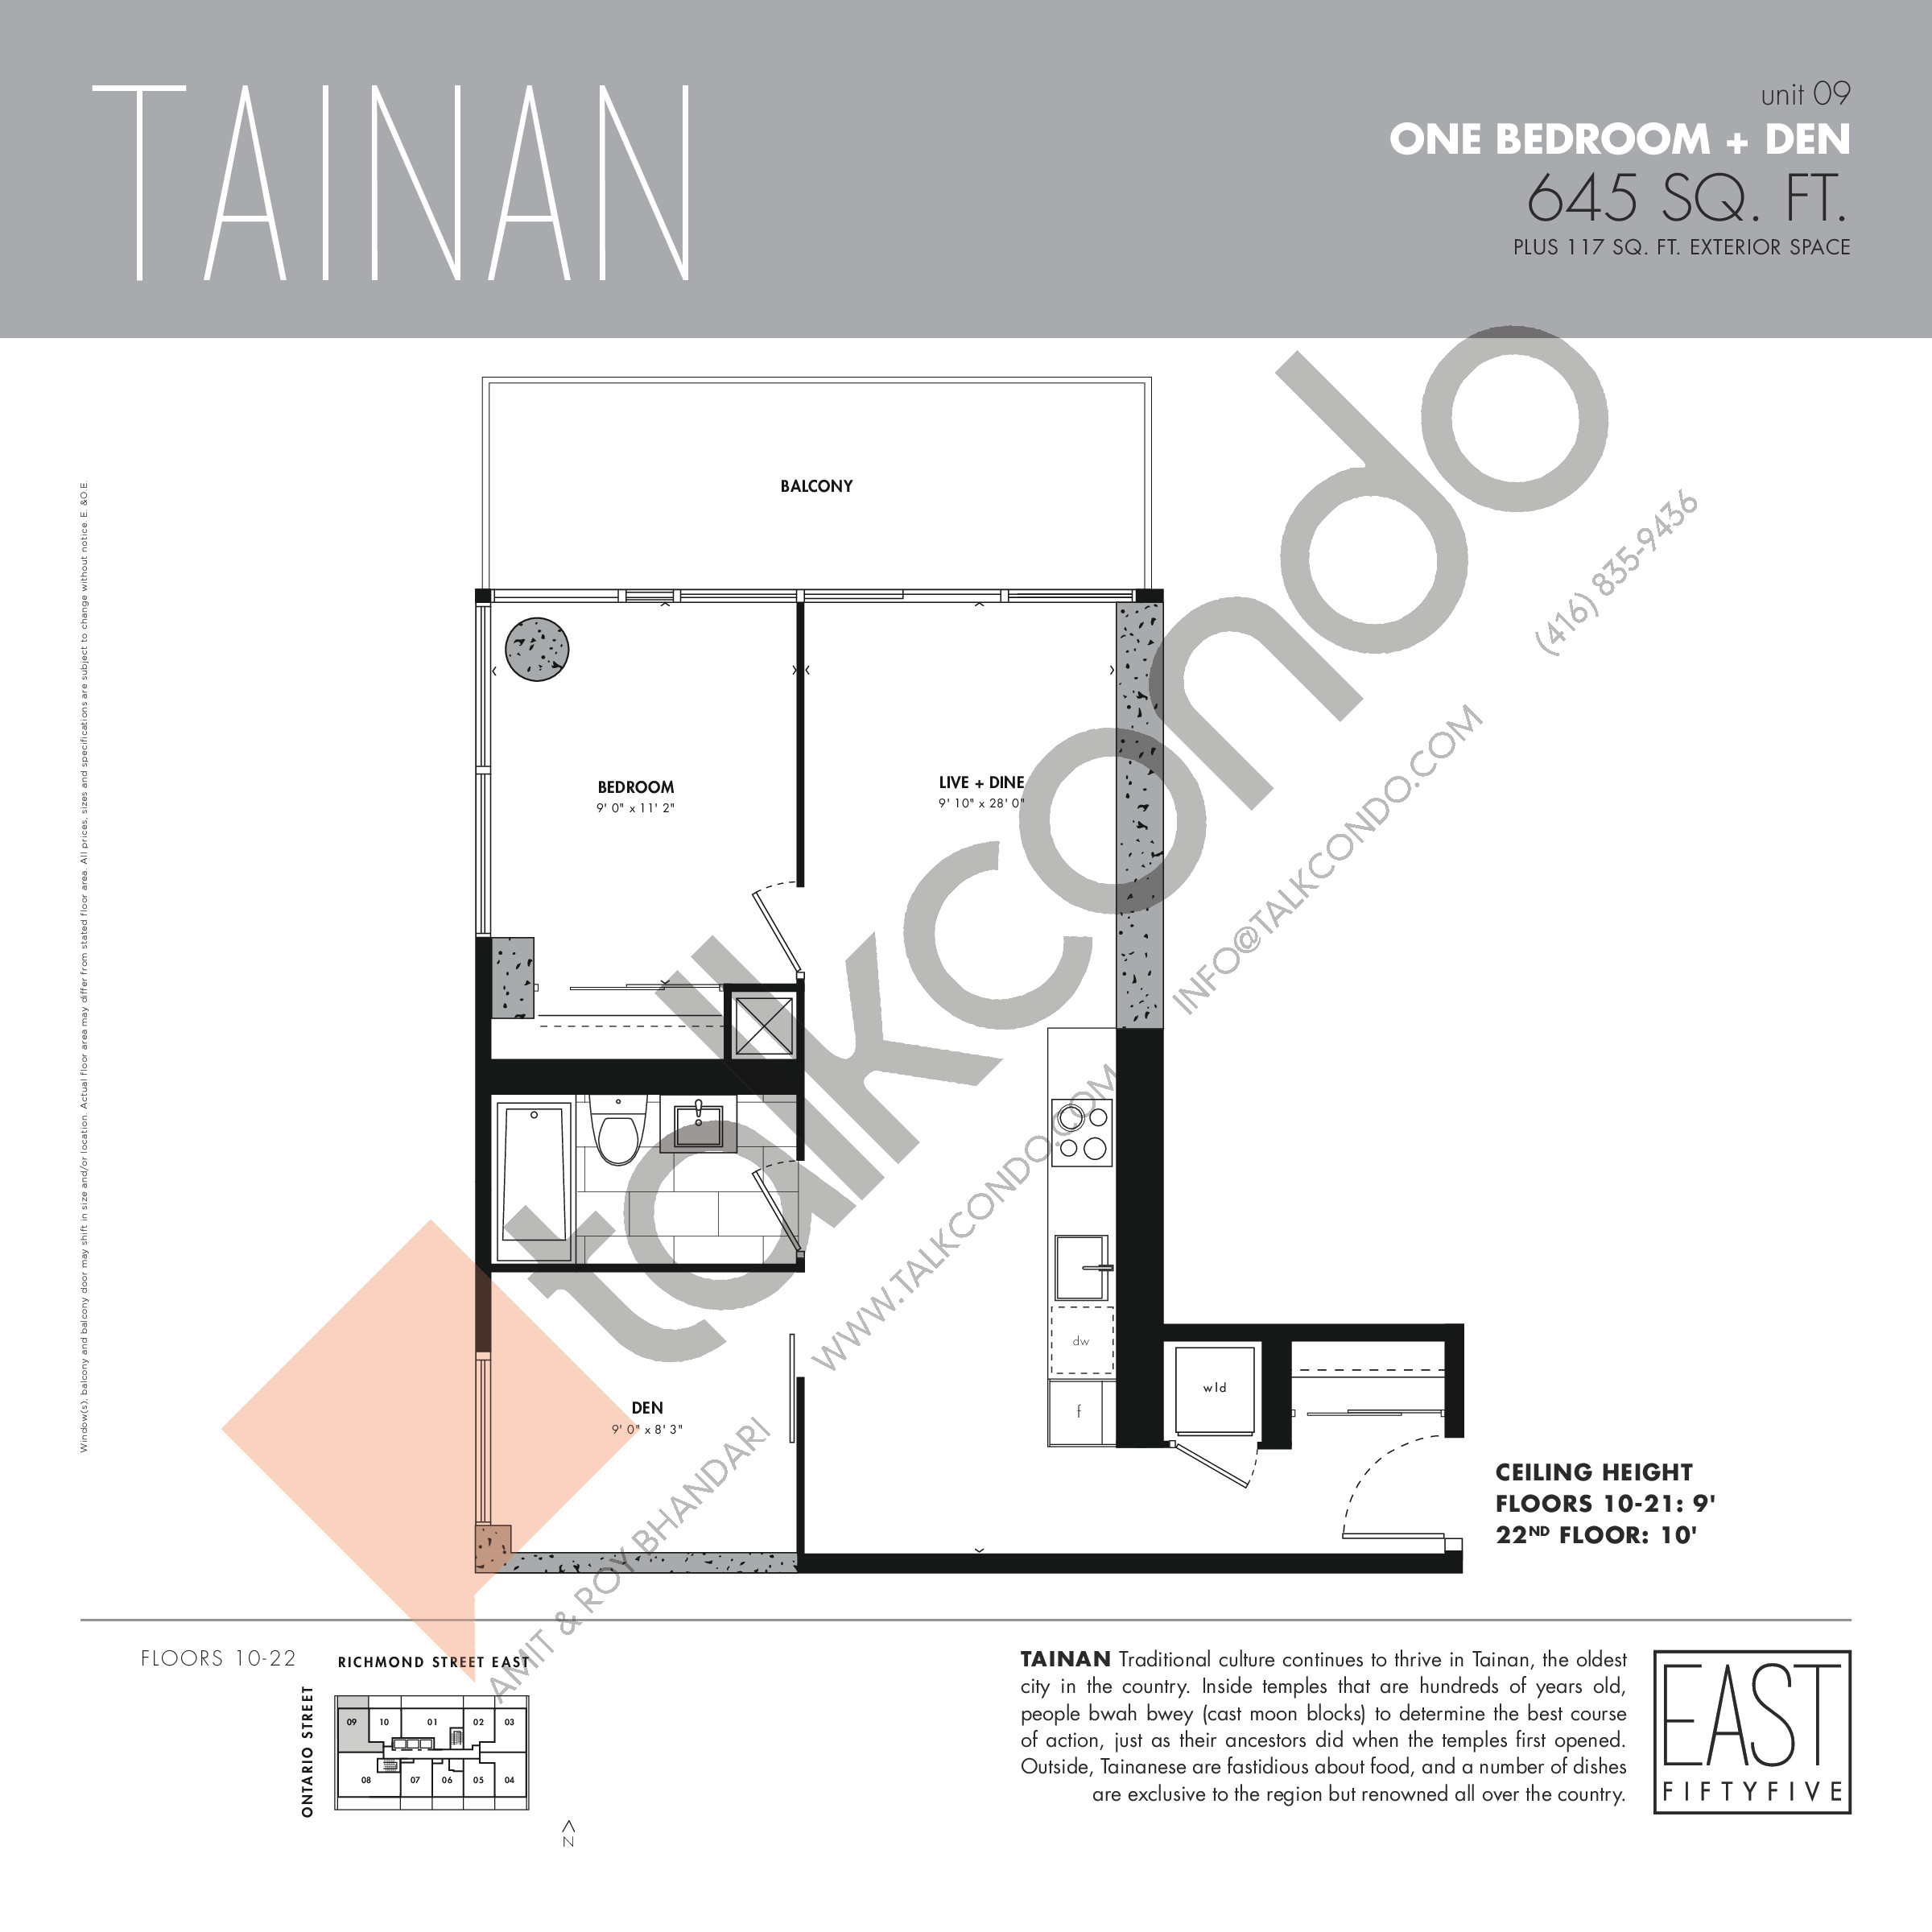 East 55 Condos Tainan 645 Sq Ft 1 5 Bedrooms